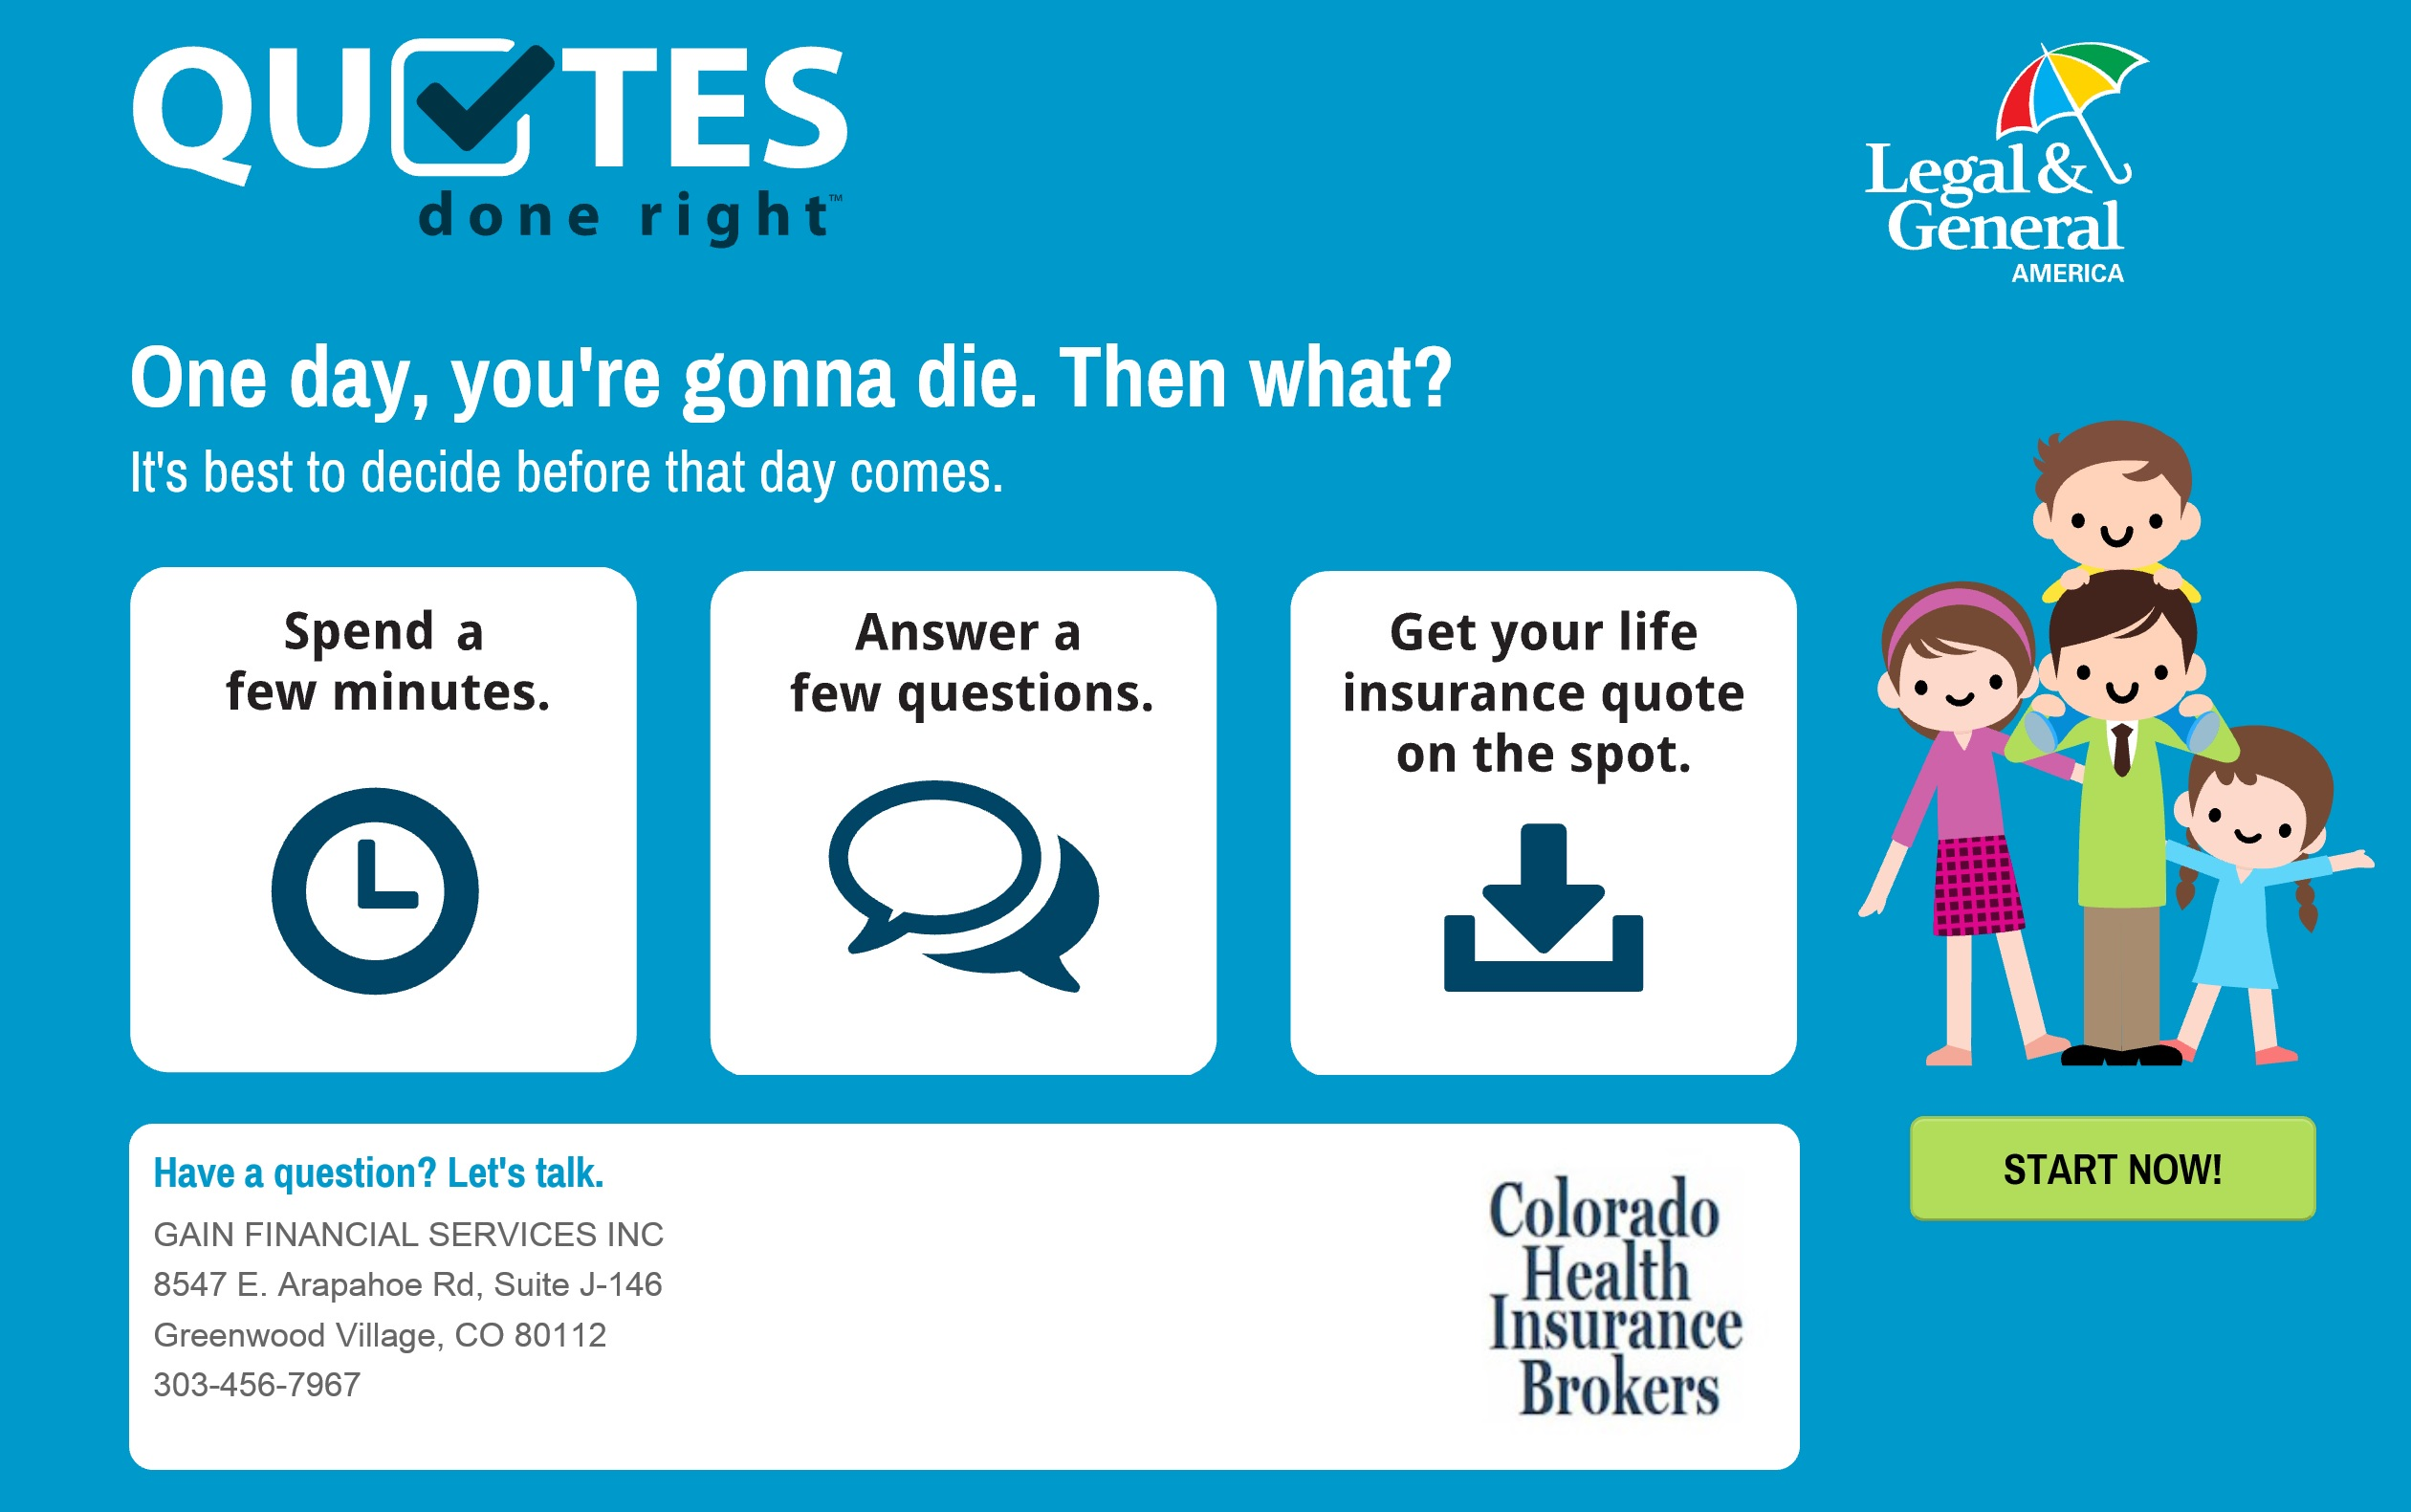 Affordable Life Insurance Quotes Mesmerizing Colorado Health Insurance  Fast And Affordable Life Insurance